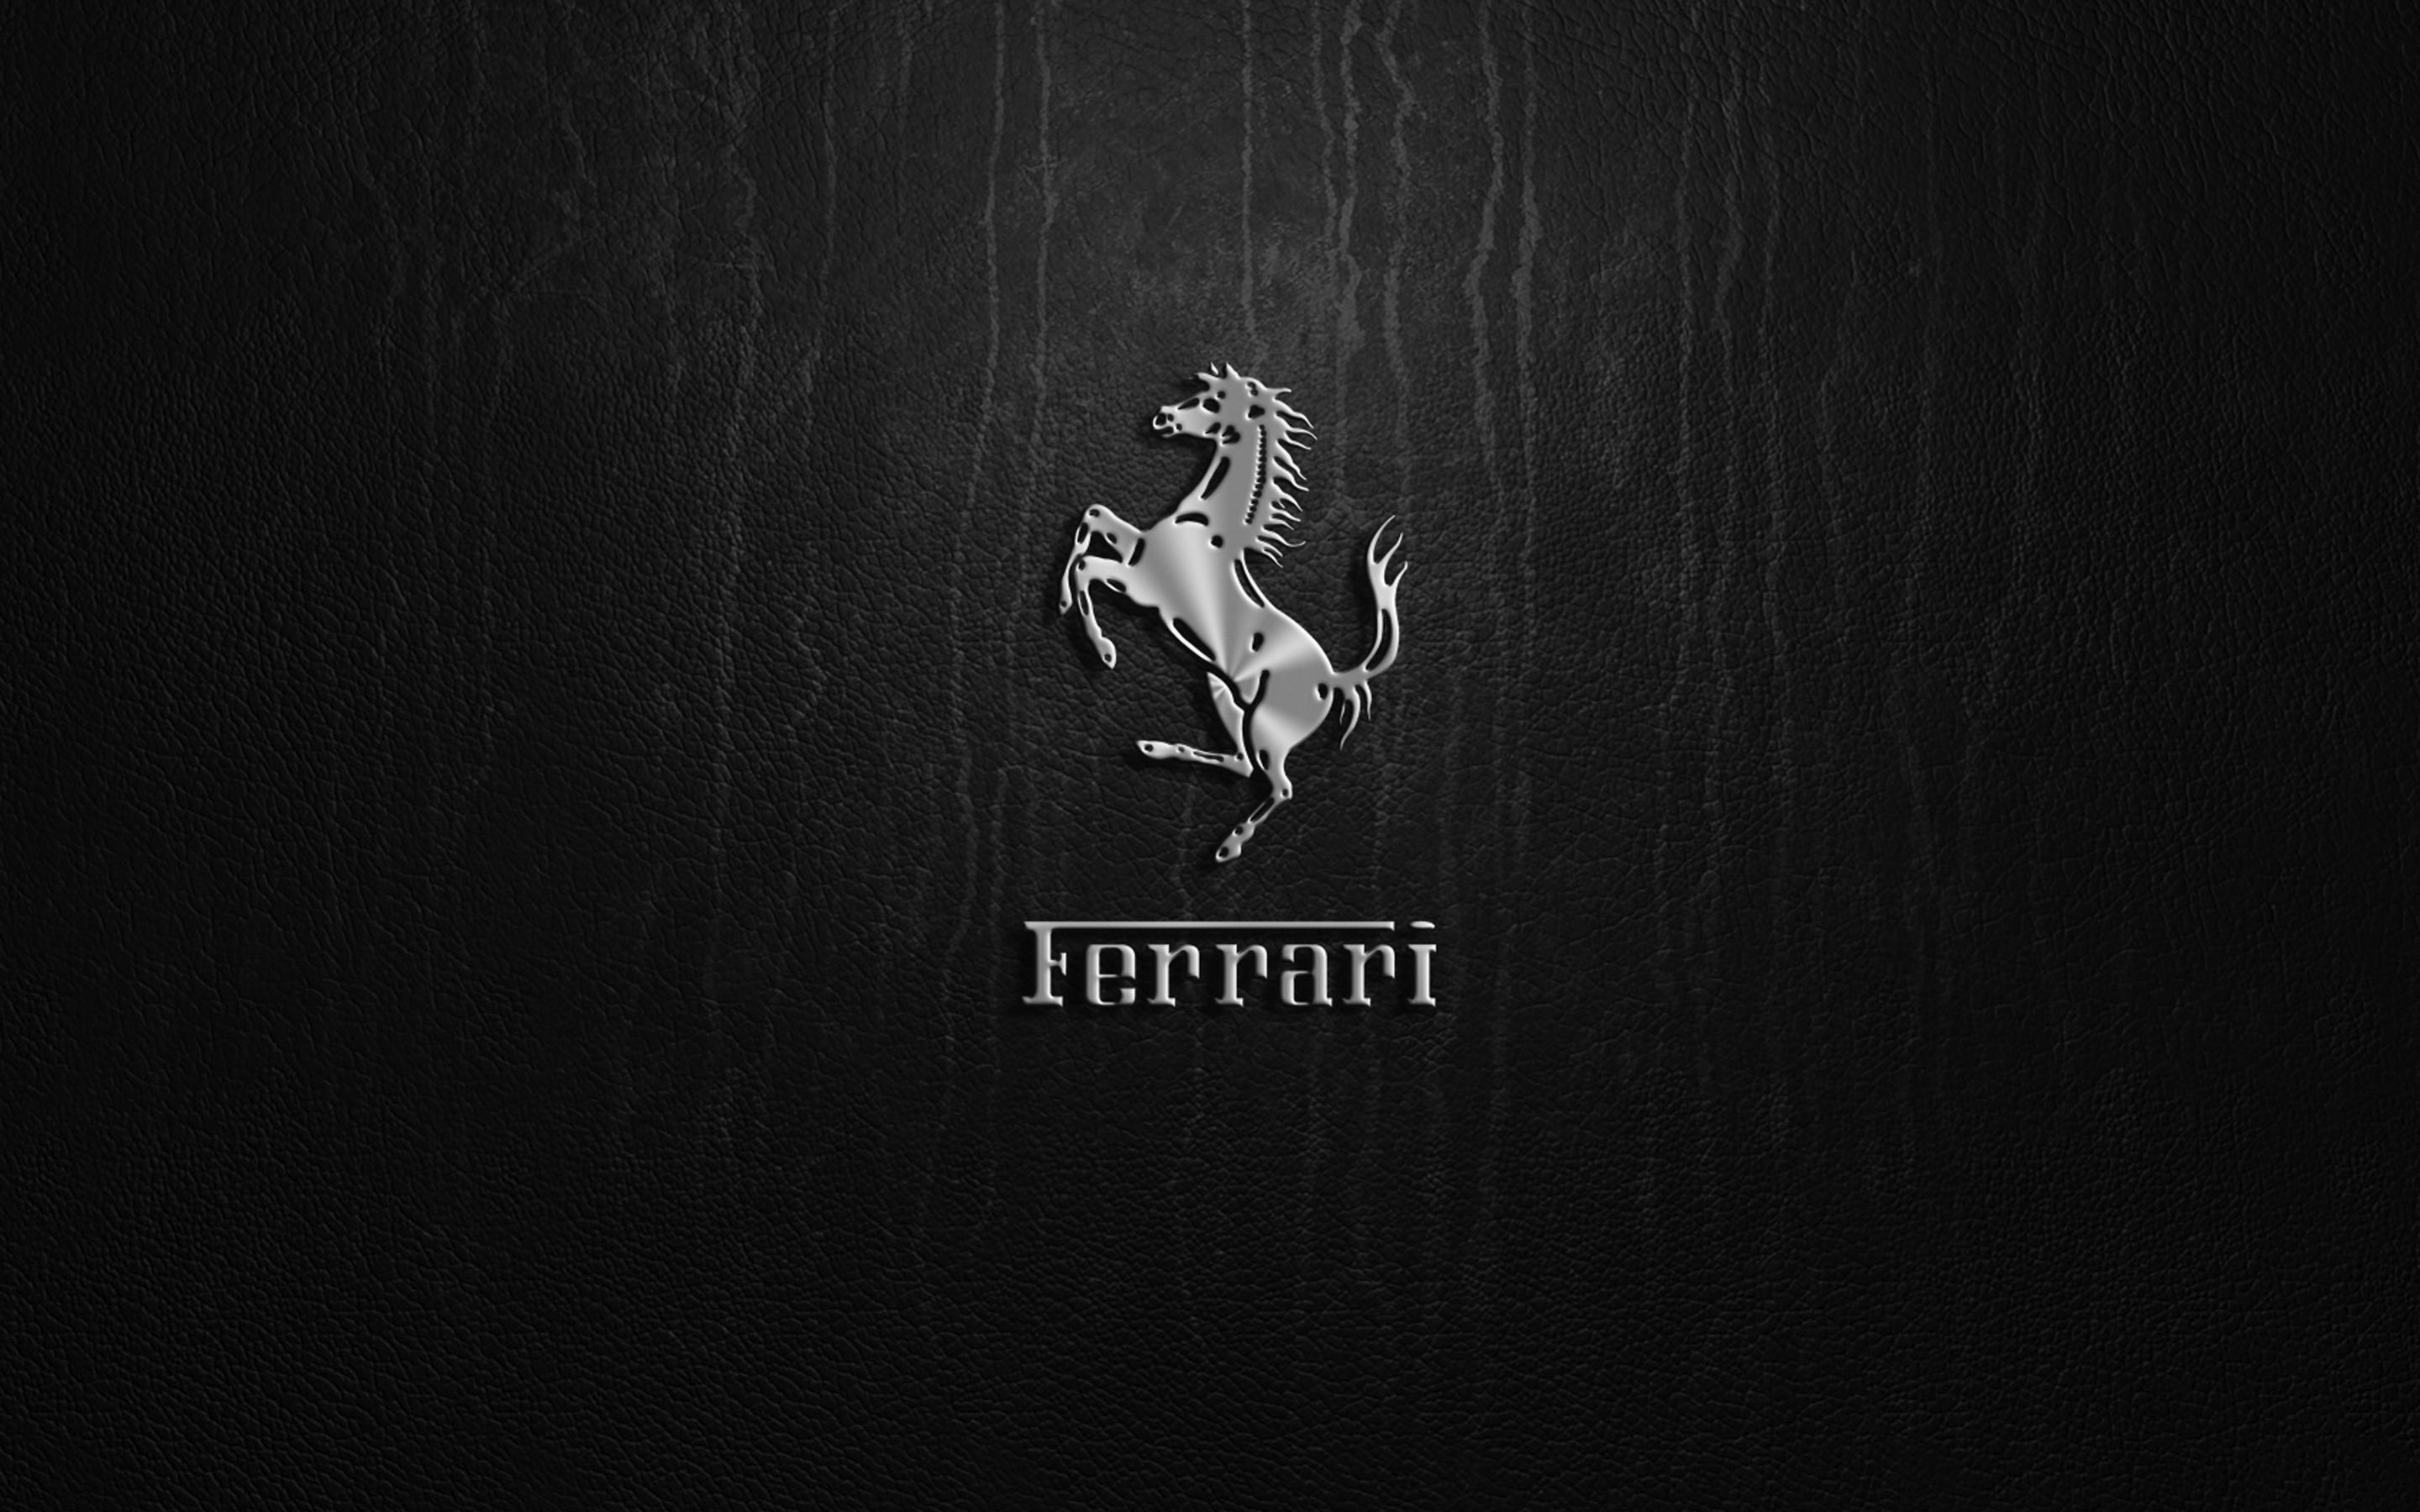 Ferrari Logo Wallpapers - Full HD wallpaper search